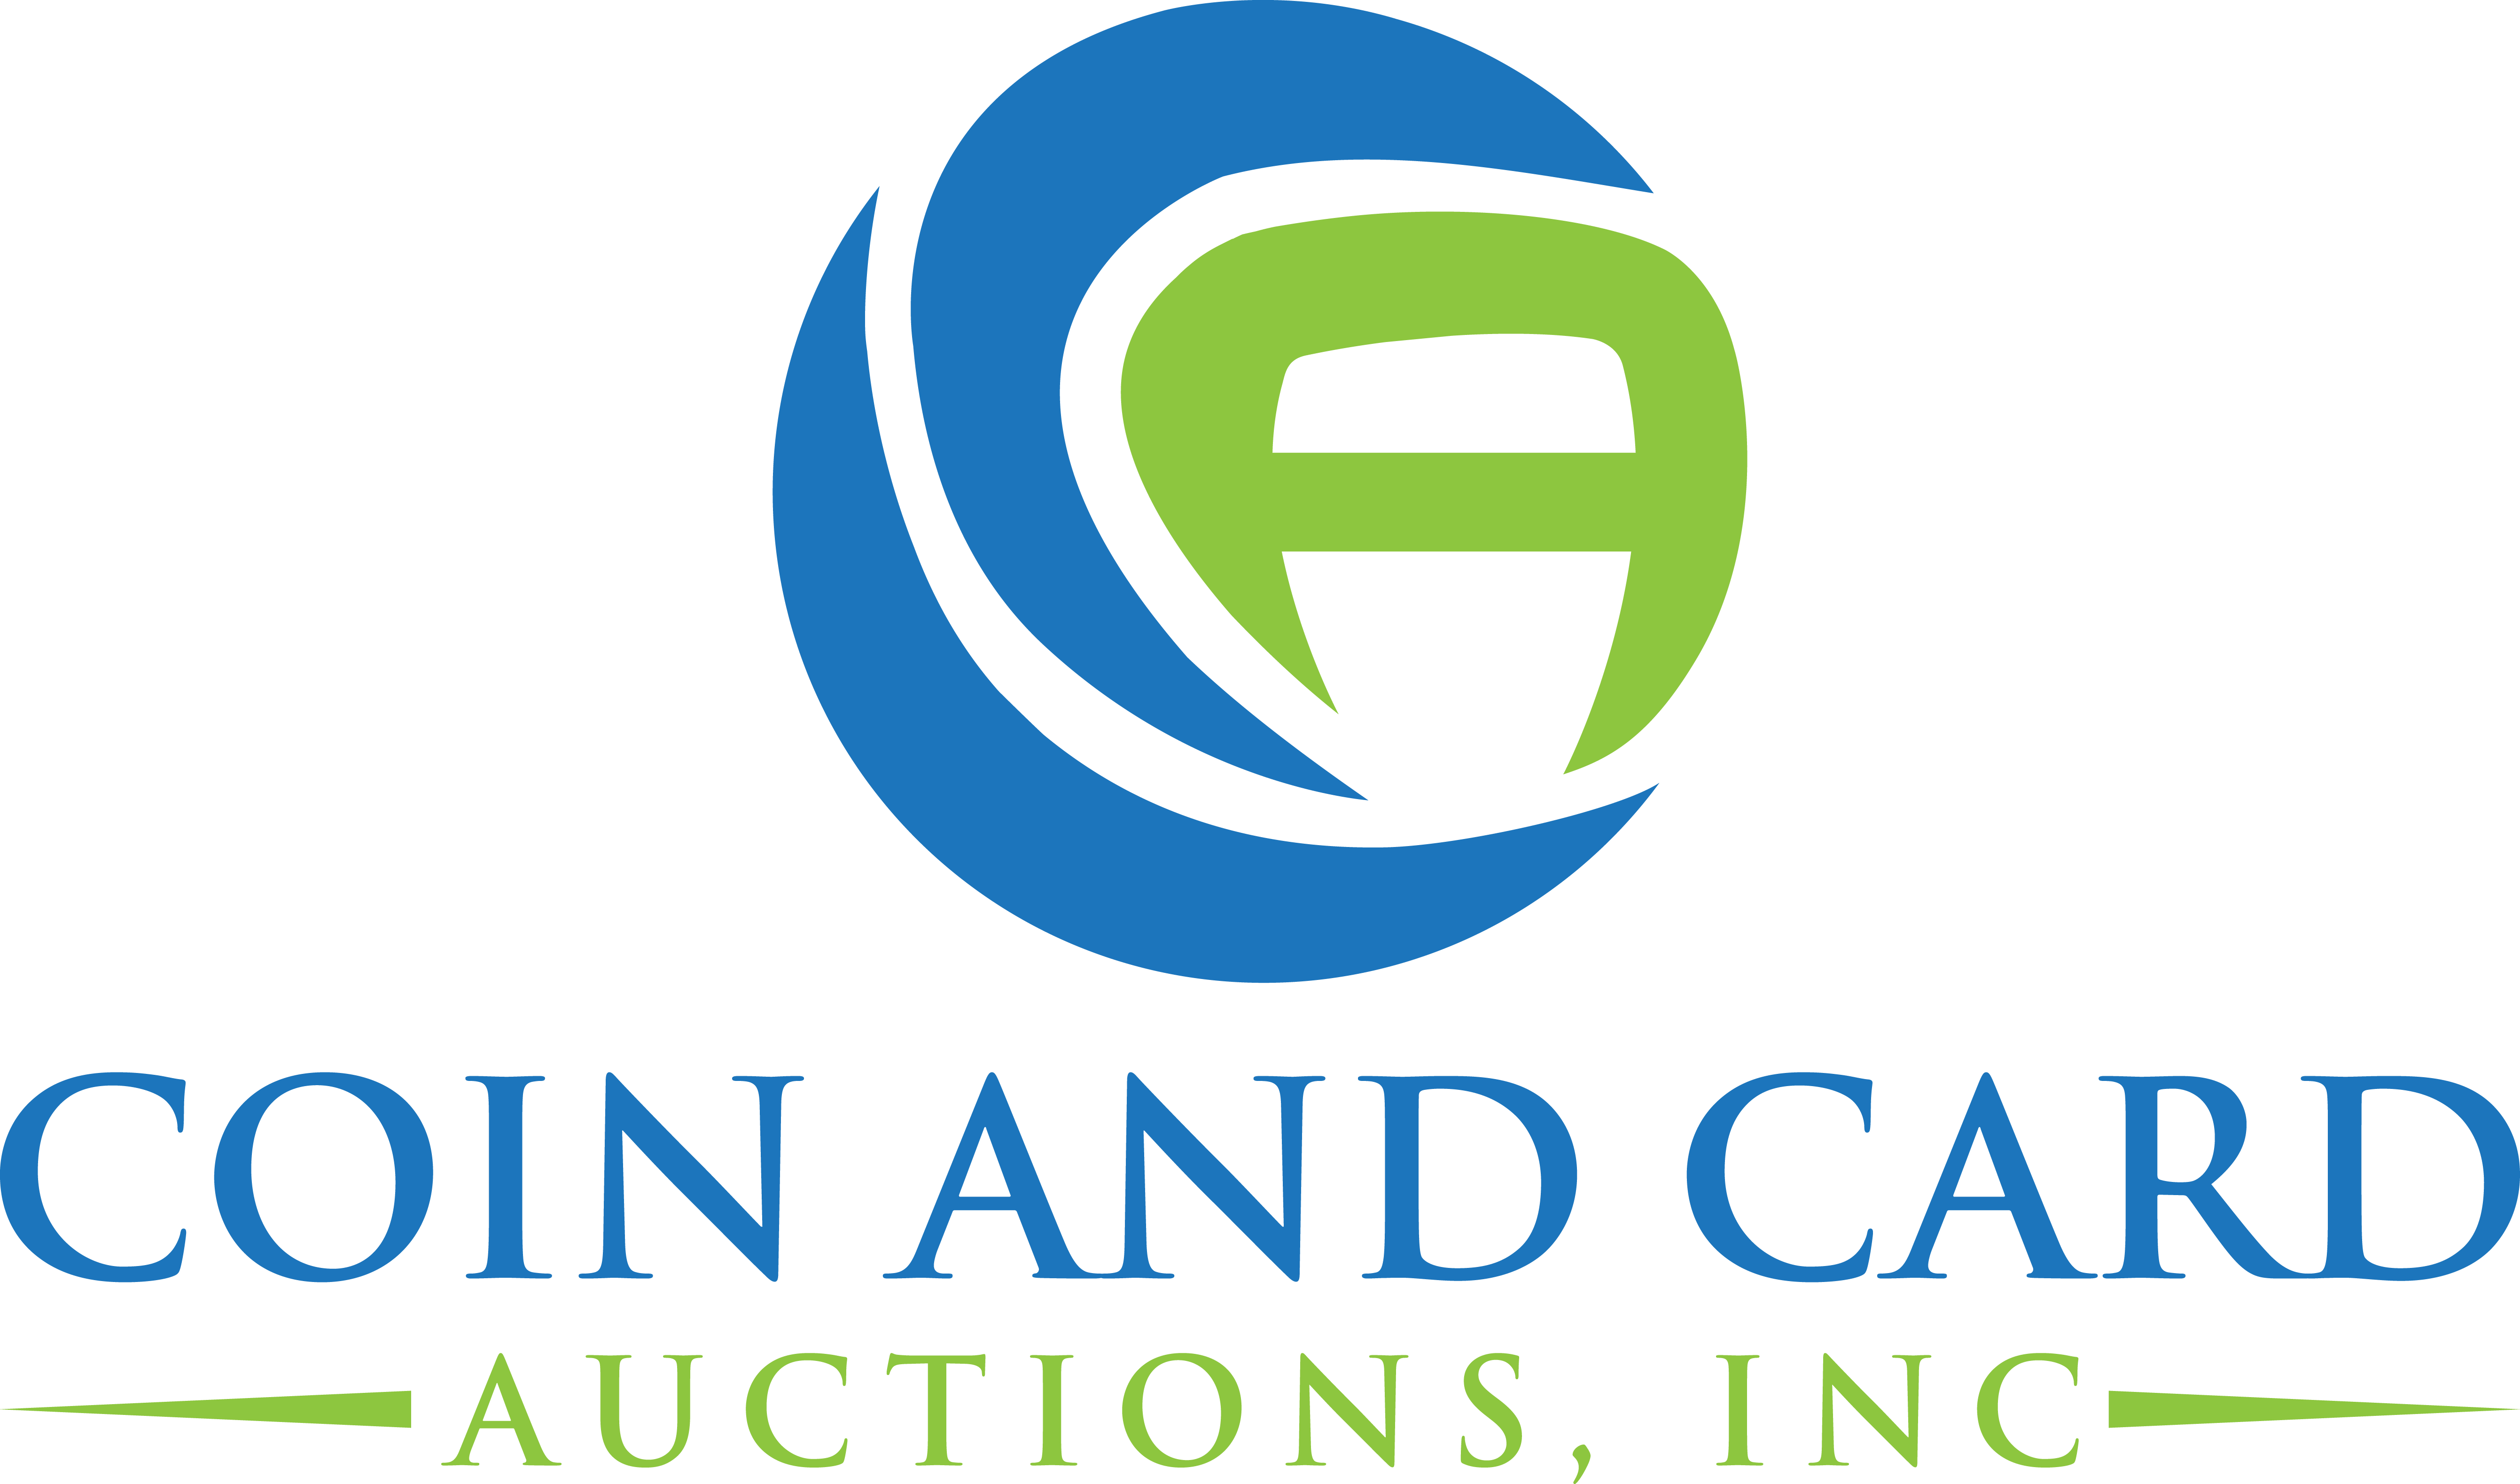 Coin and Card Auctions, Inc